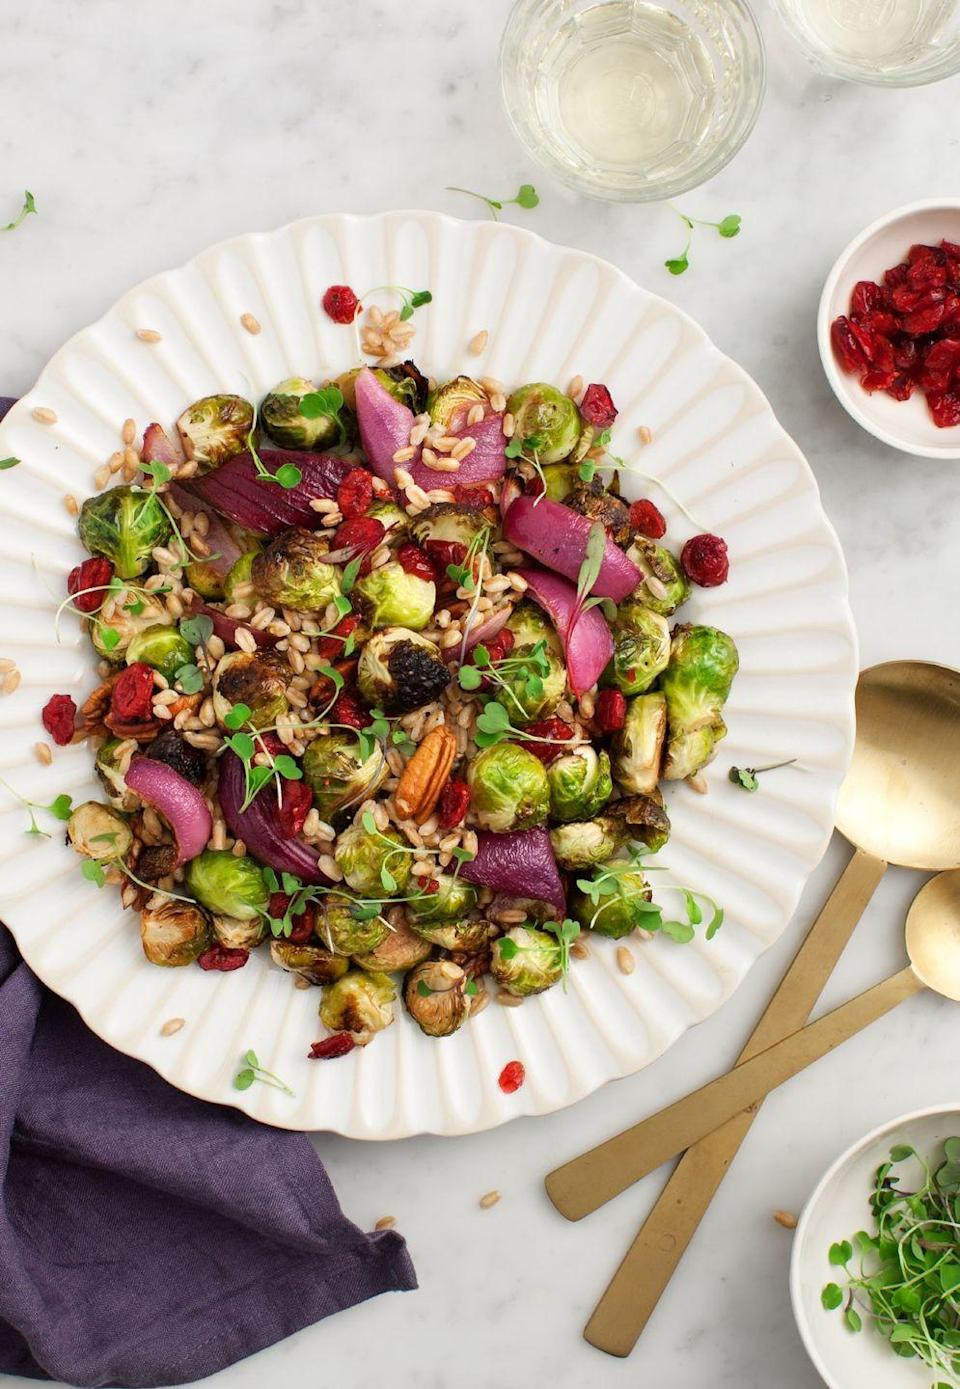 """<p>Farro is the base for this festive fall dish, but it's fair to say the caramelized sprouts are the star of the show. Prep on Sunday for a week of flavorful lunches. </p><p><strong>Get the recipe from <a href=""""https://www.loveandlemons.com/balsamic-brussels-sprouts/"""" rel=""""nofollow noopener"""" target=""""_blank"""" data-ylk=""""slk:Love & Lemons"""" class=""""link rapid-noclick-resp"""">Love & Lemons</a>.</strong></p>"""